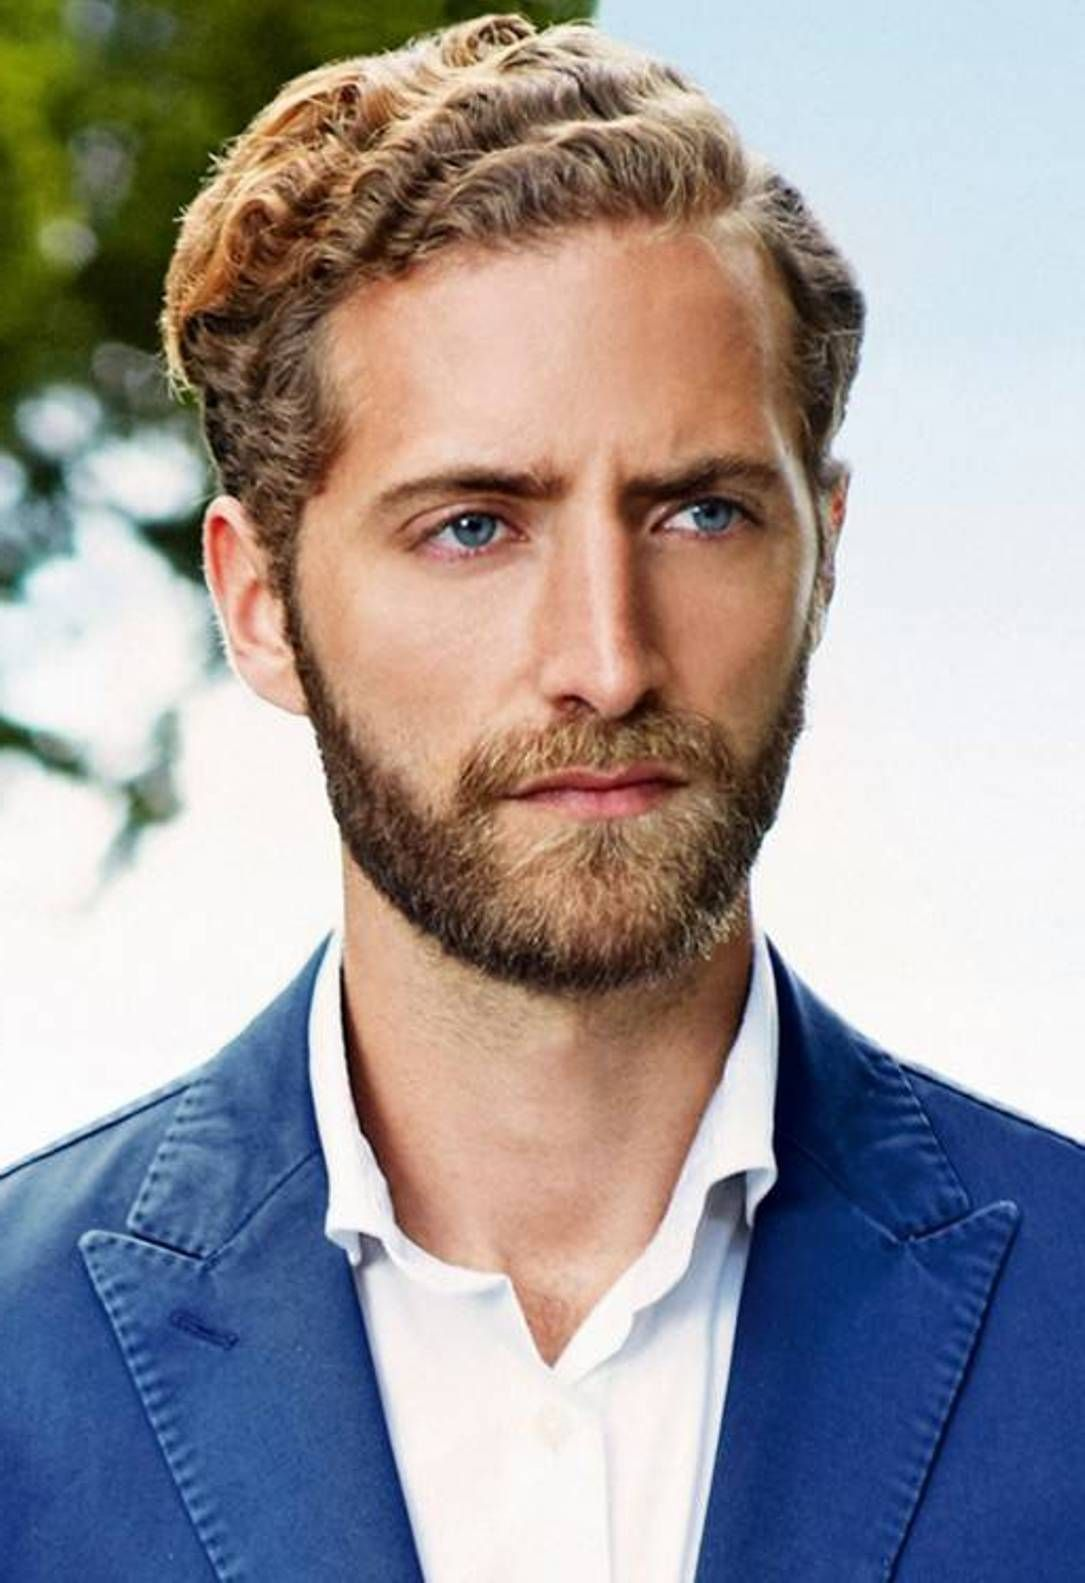 Groovy Hair Style For Men Curly Hair Styles And Style For Men On Pinterest Hairstyle Inspiration Daily Dogsangcom